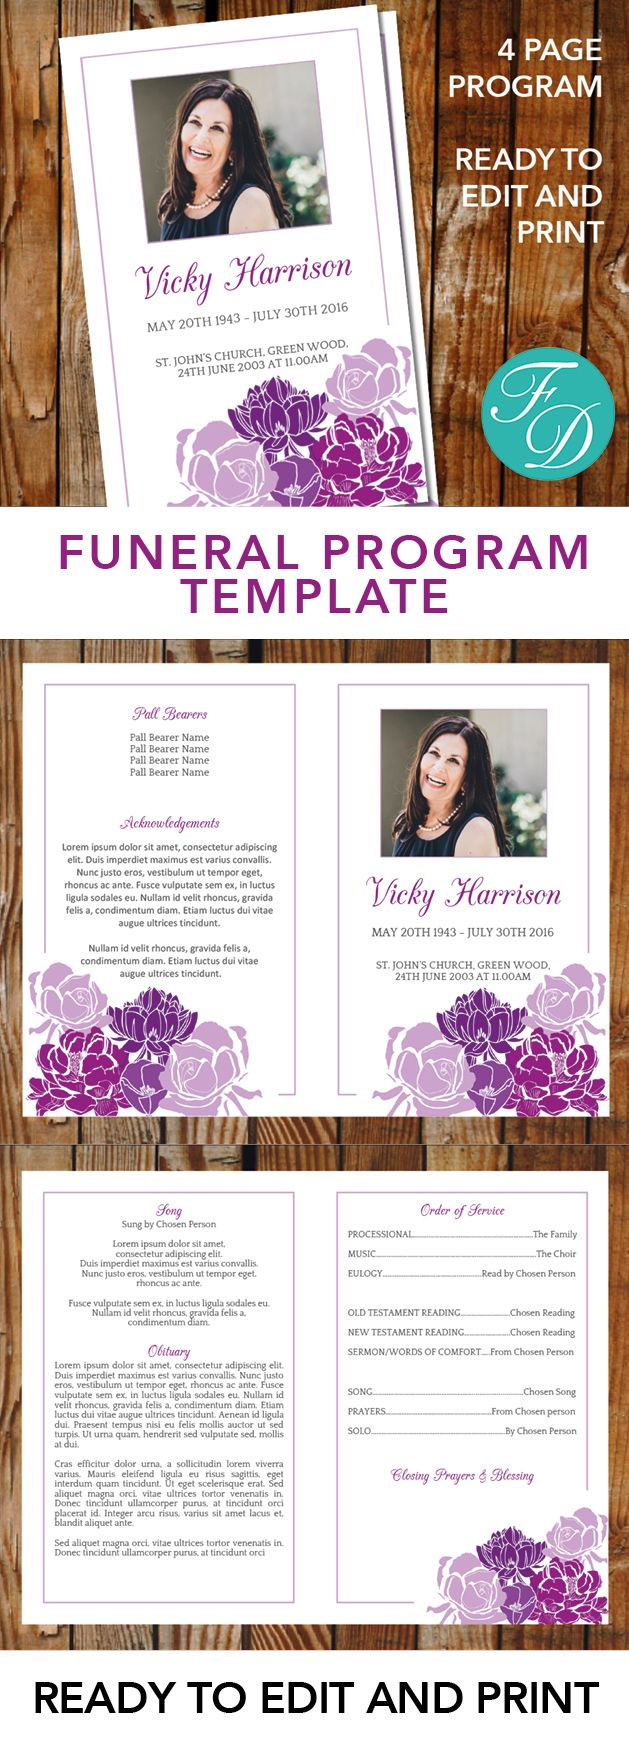 Purple Flowers Printable Funeral program ready to edit & print Simply purchase your funeral templates, download, edit with Microsoft Word and print. #obituarytemplate #memorialprogram #funeralprograms #funeraltemplate #printableprogram #celebrationoflife